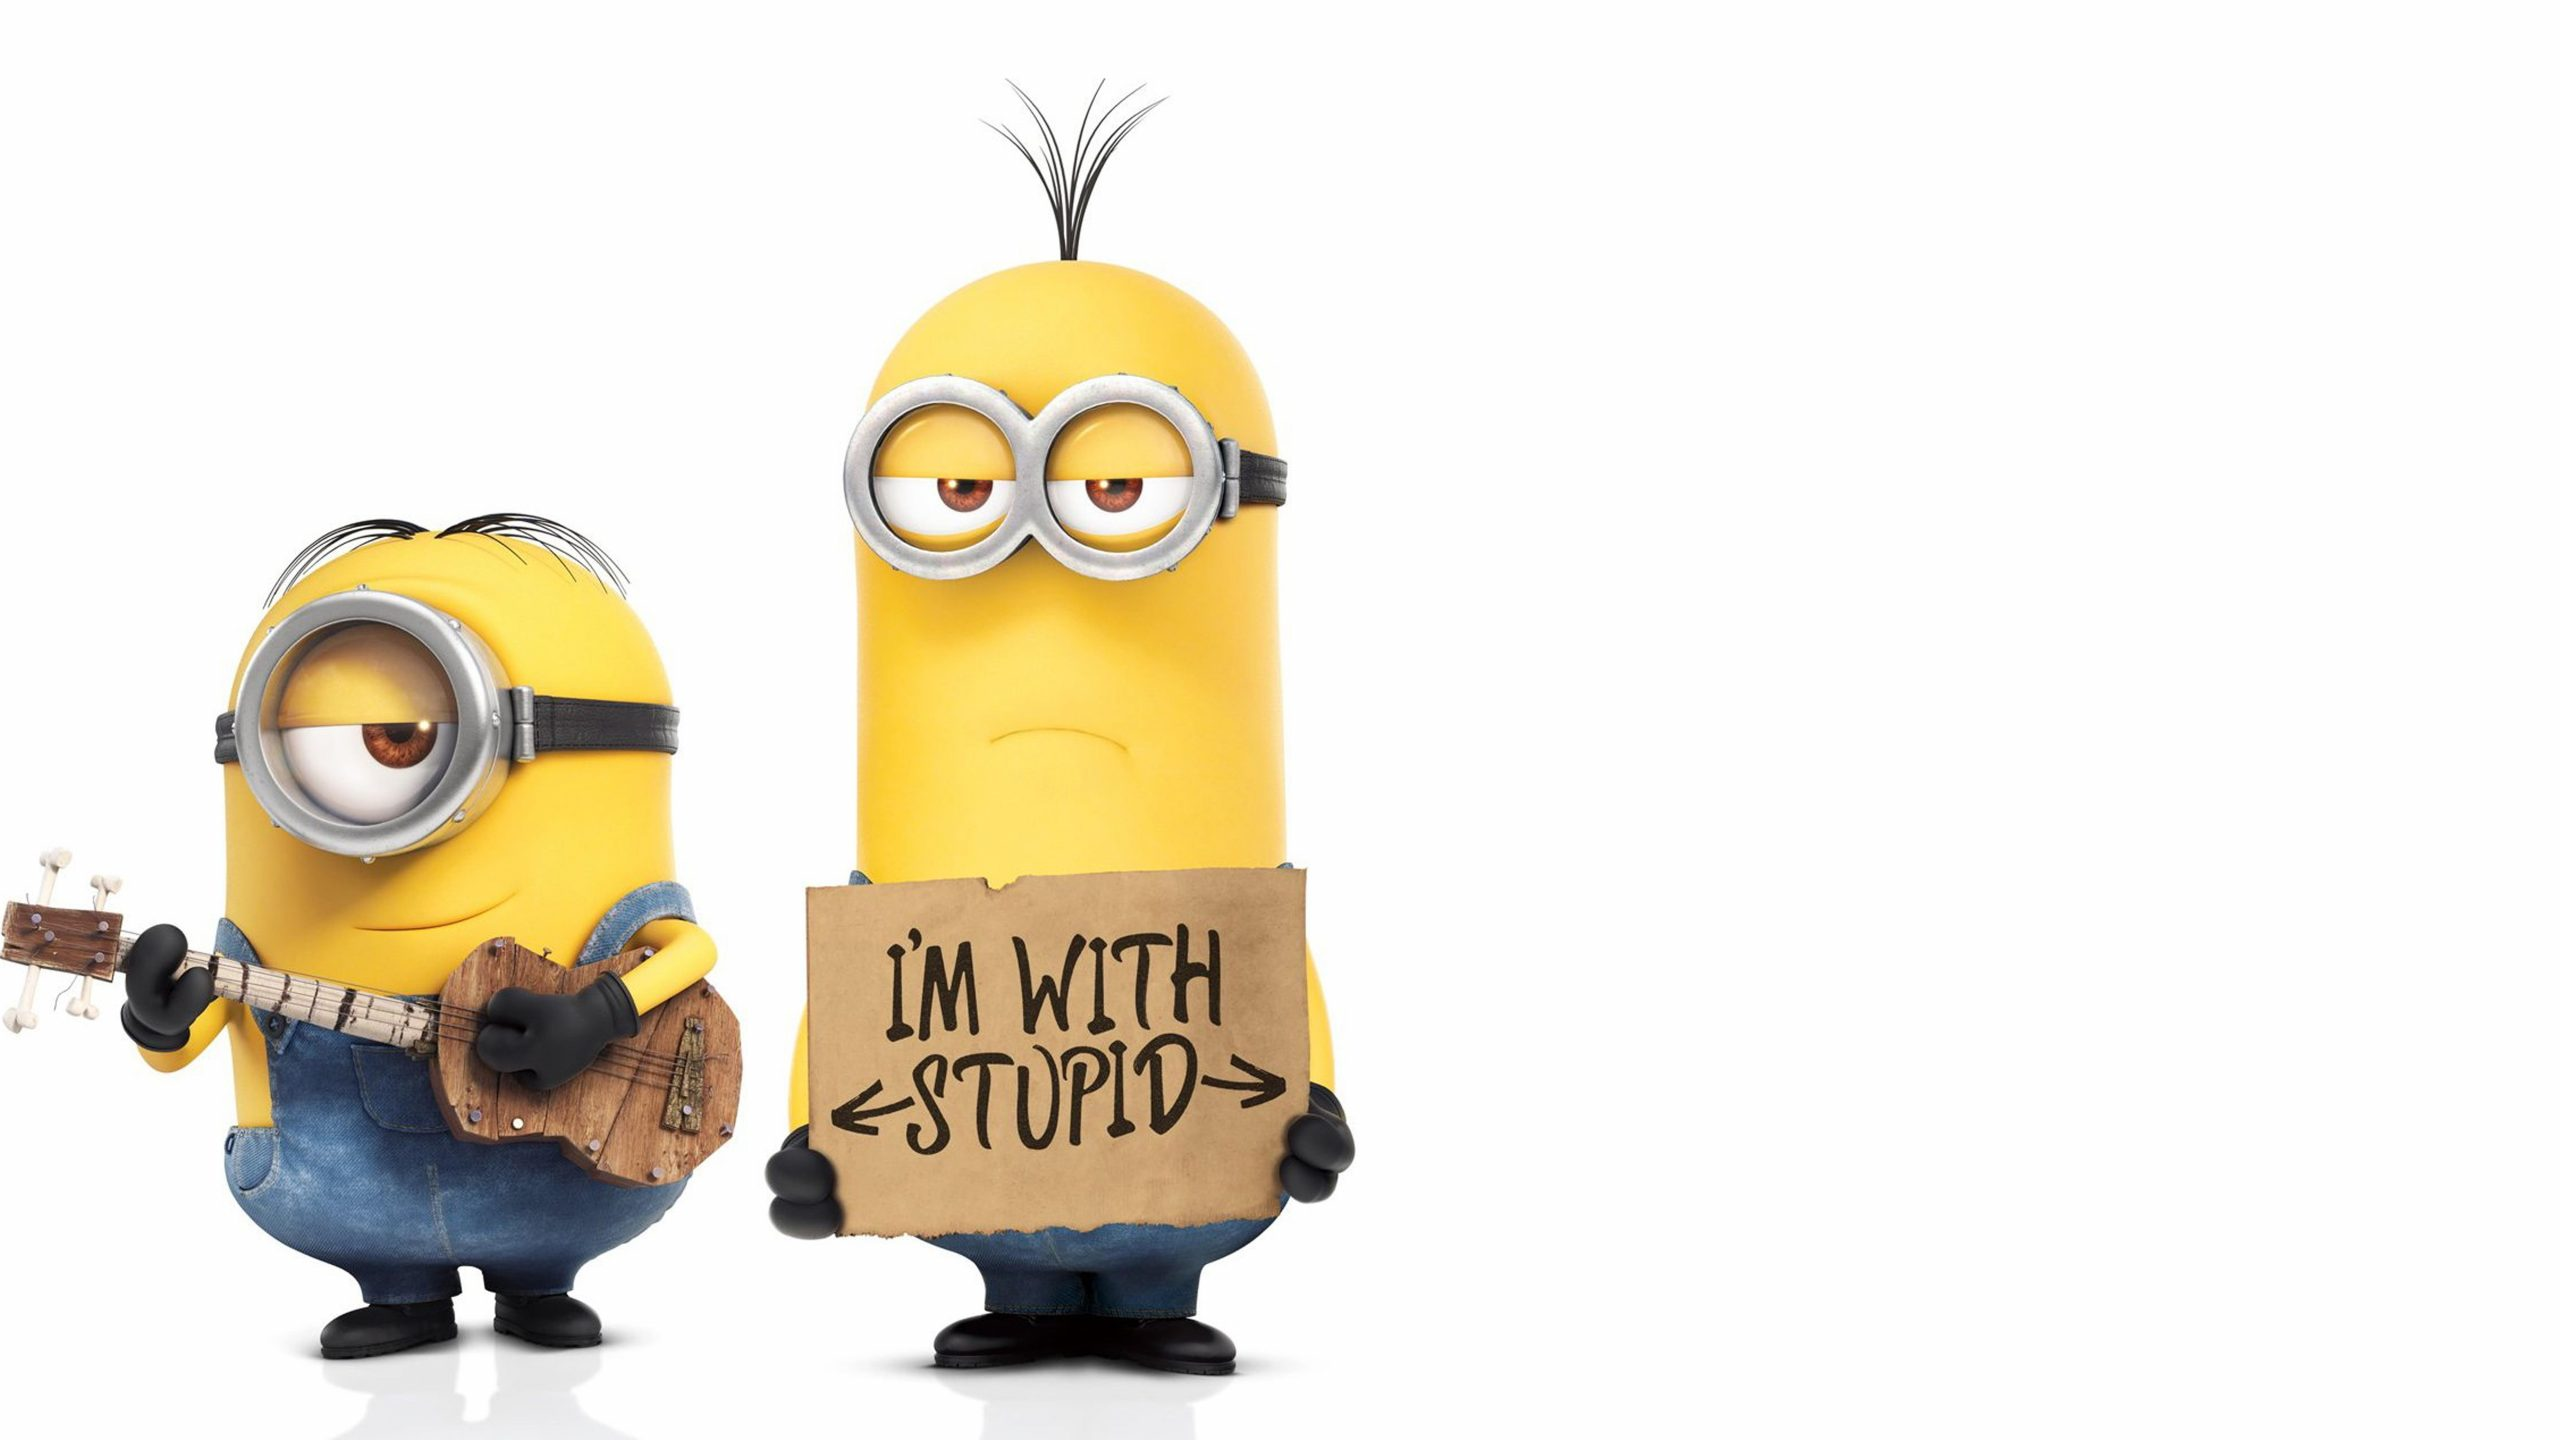 Minions You can be with stupid 369